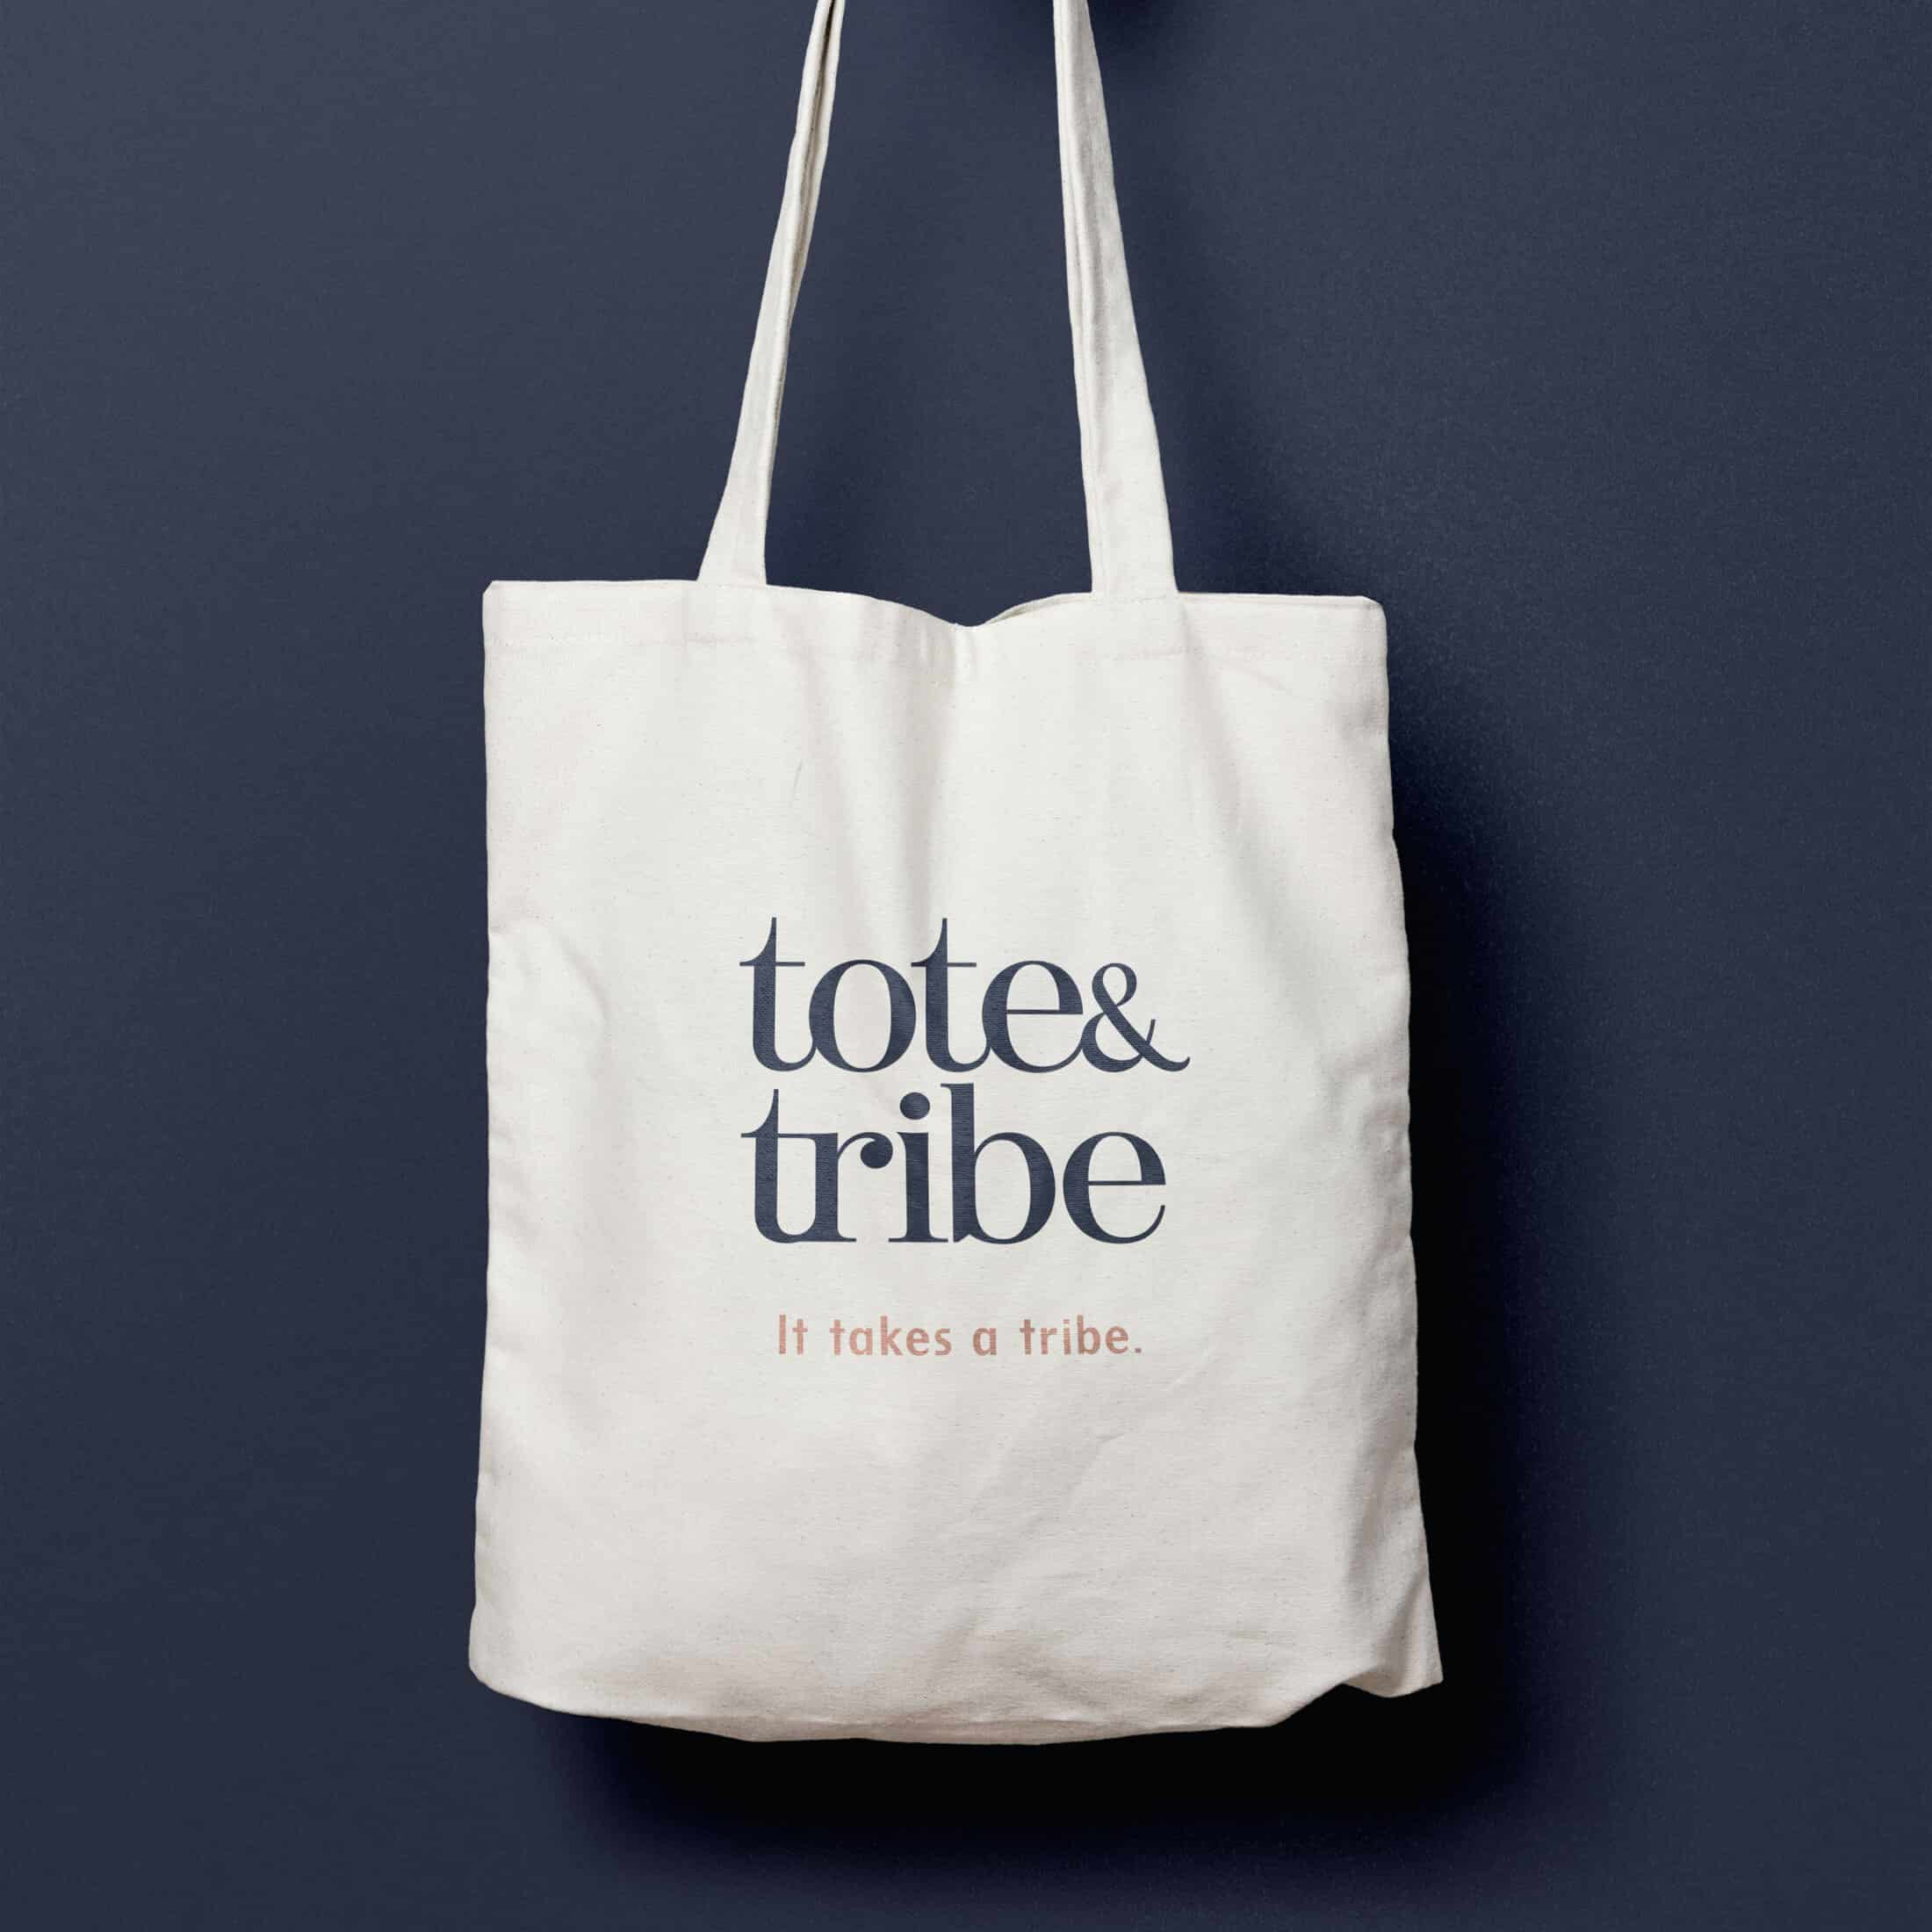 Tote and Tribe